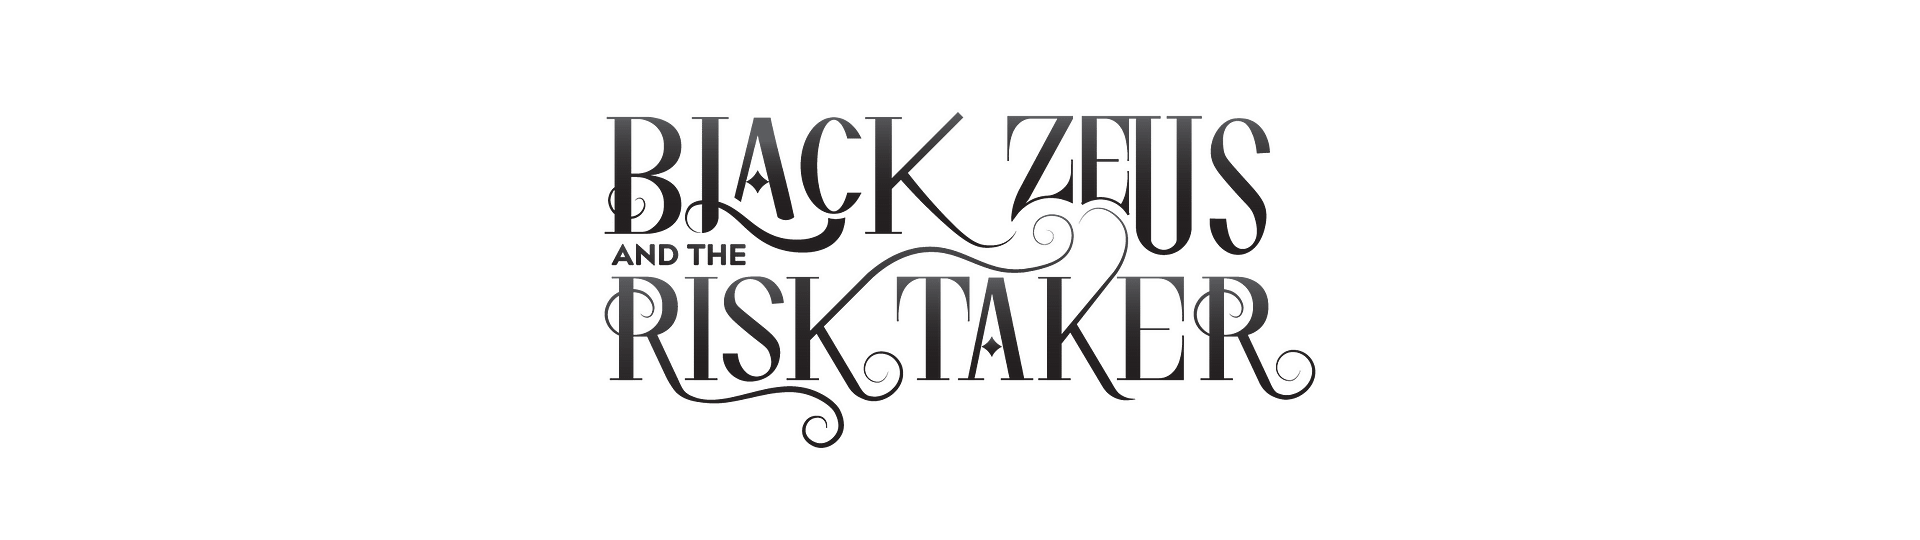 Black Zeus and the Risk Taker logo